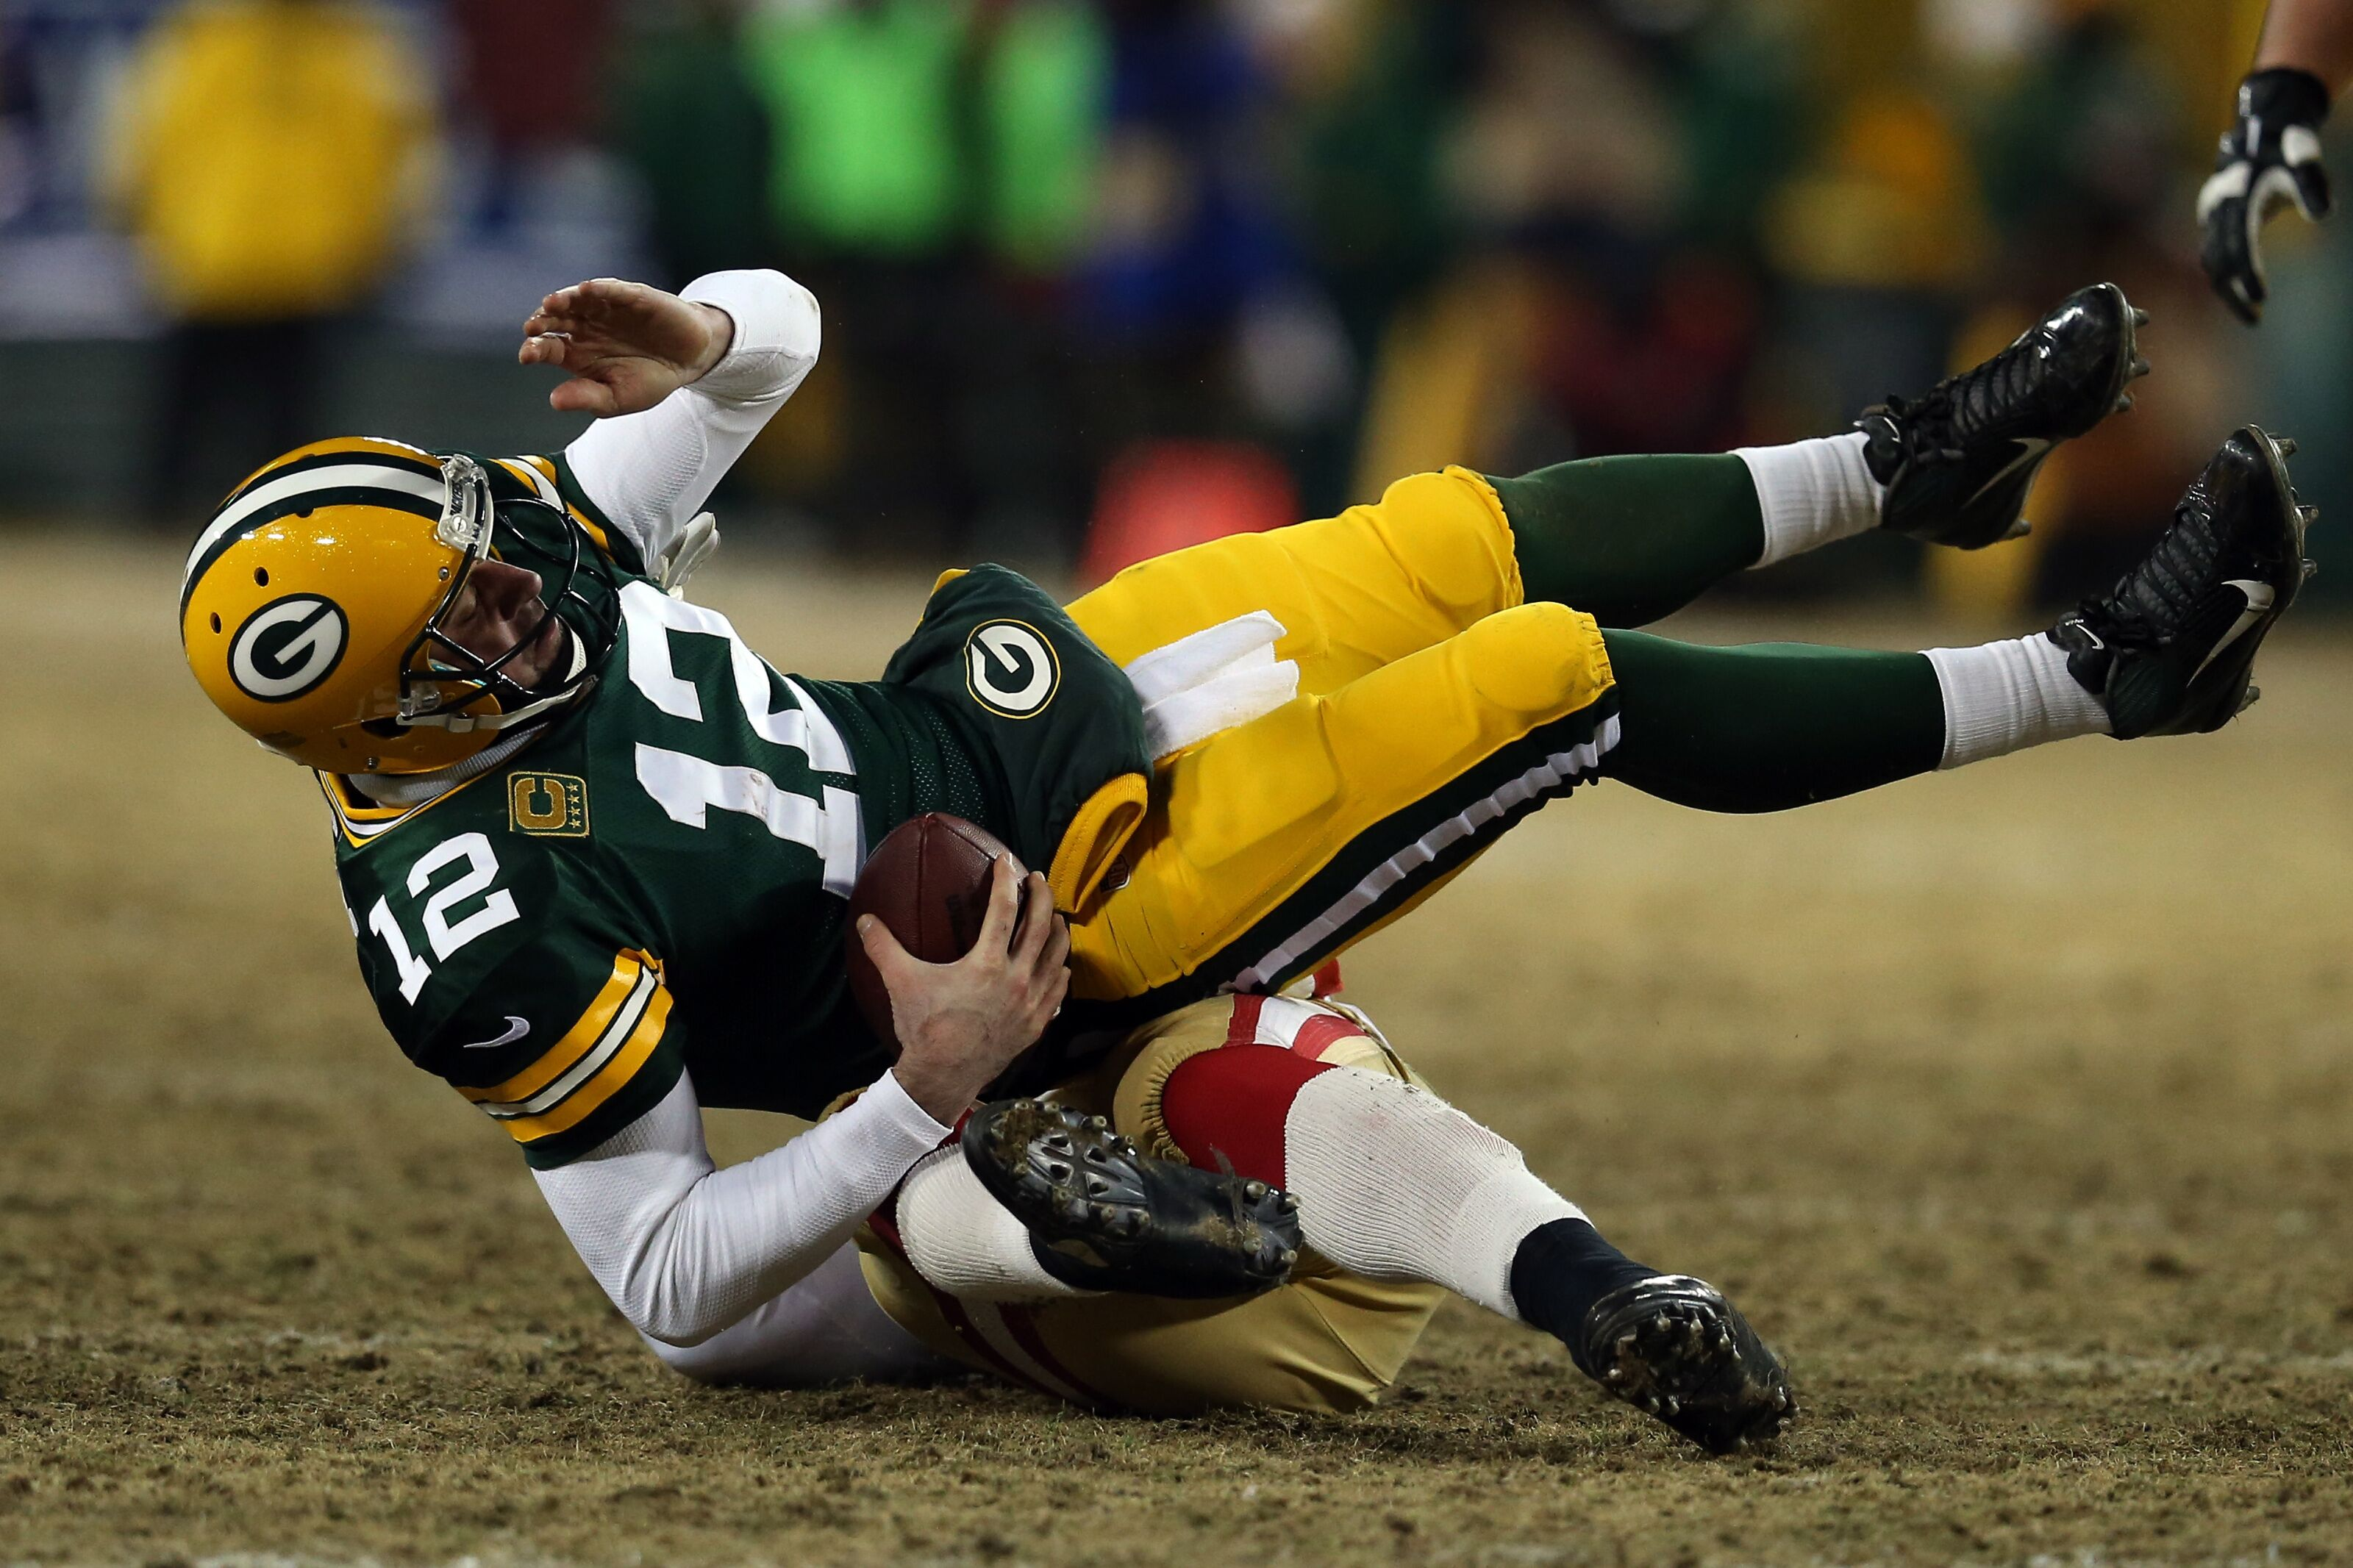 49ers vs. Packers: Niners face injured Rodgers on Monday Night Football